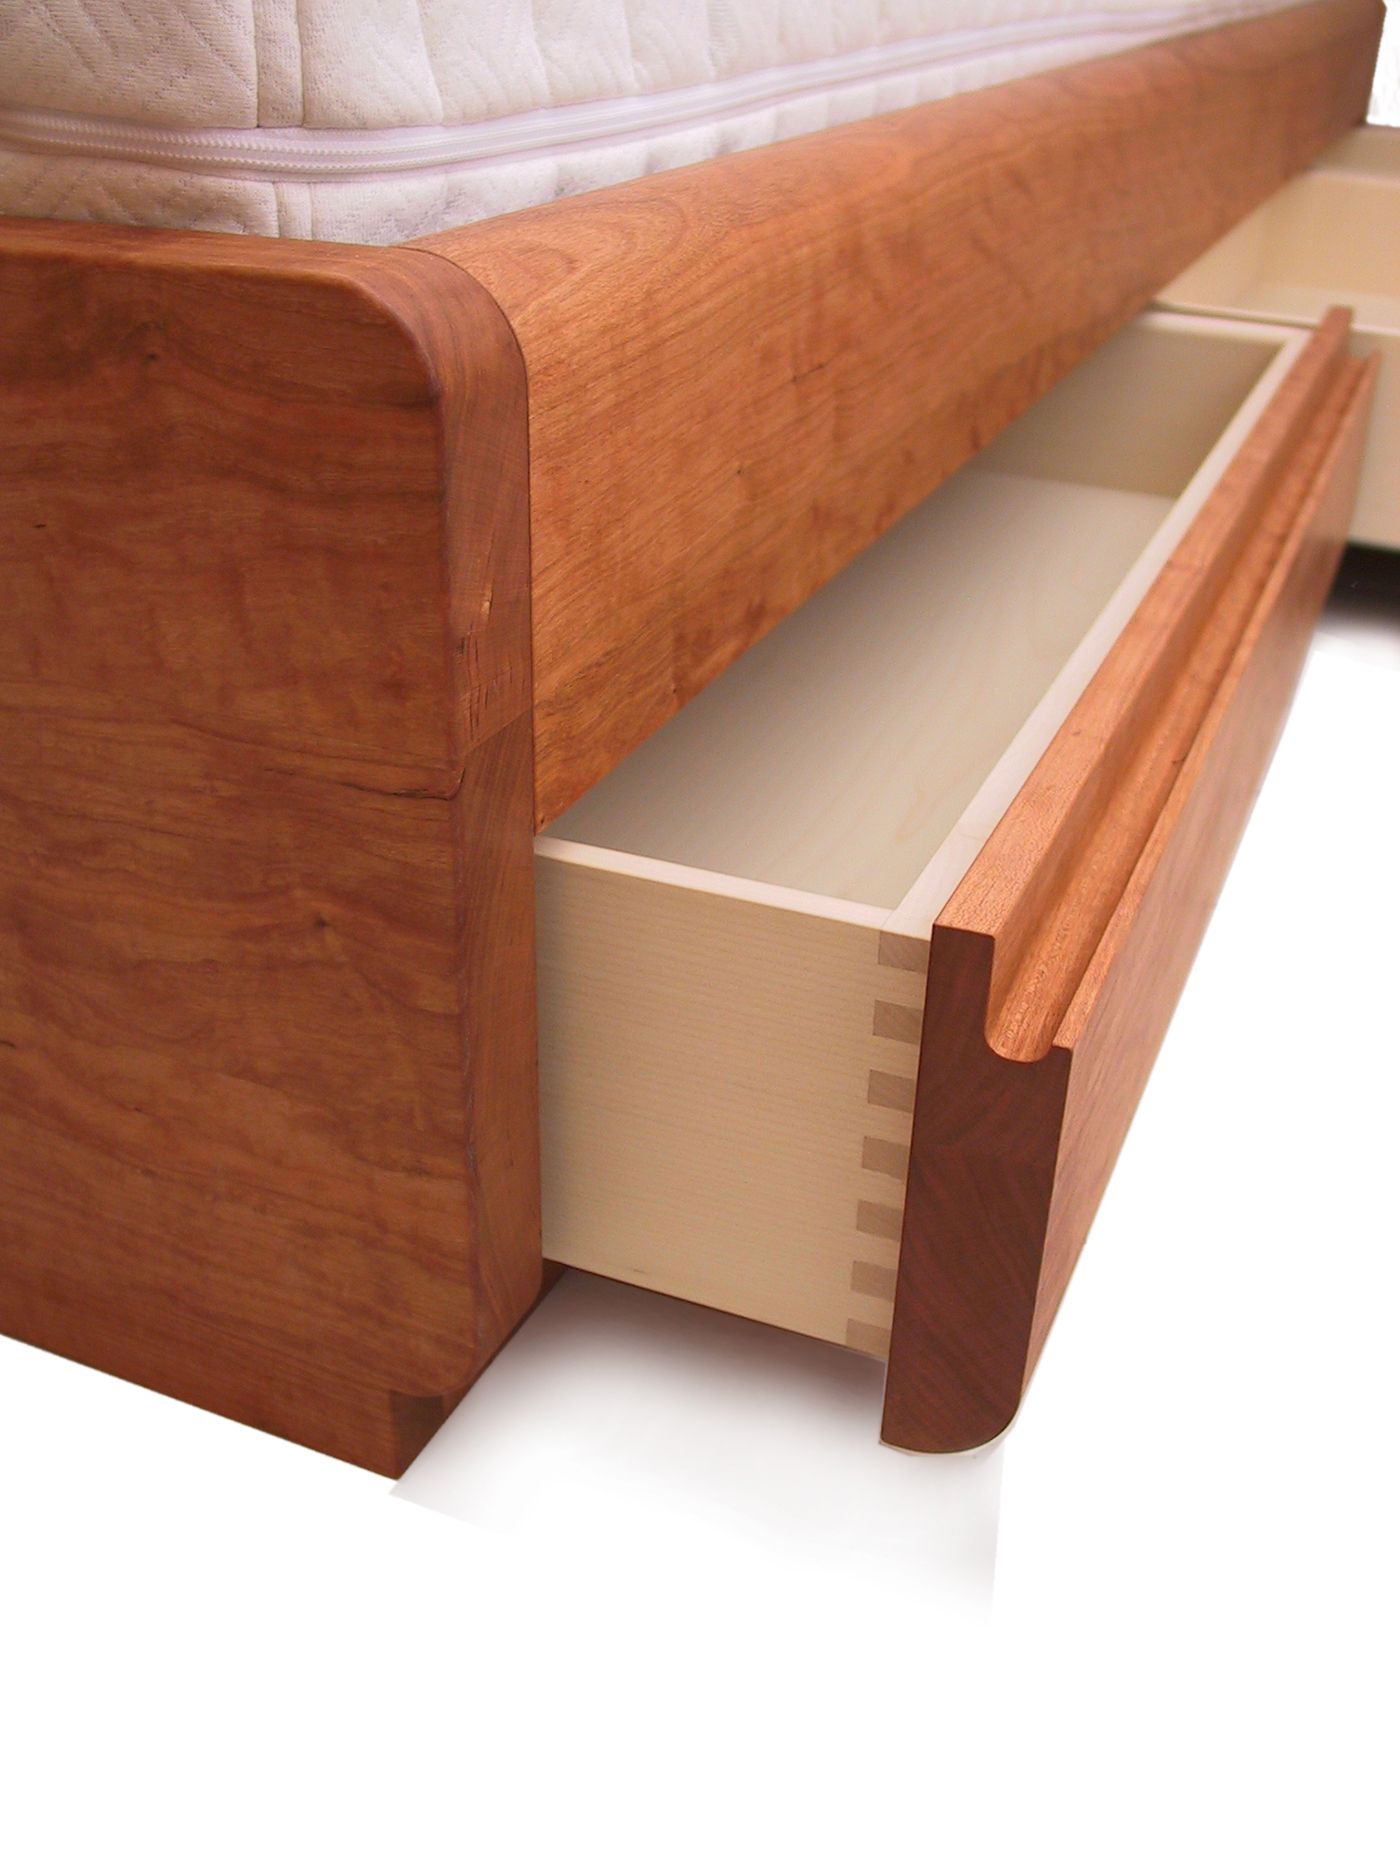 Commission - Bed with drawers